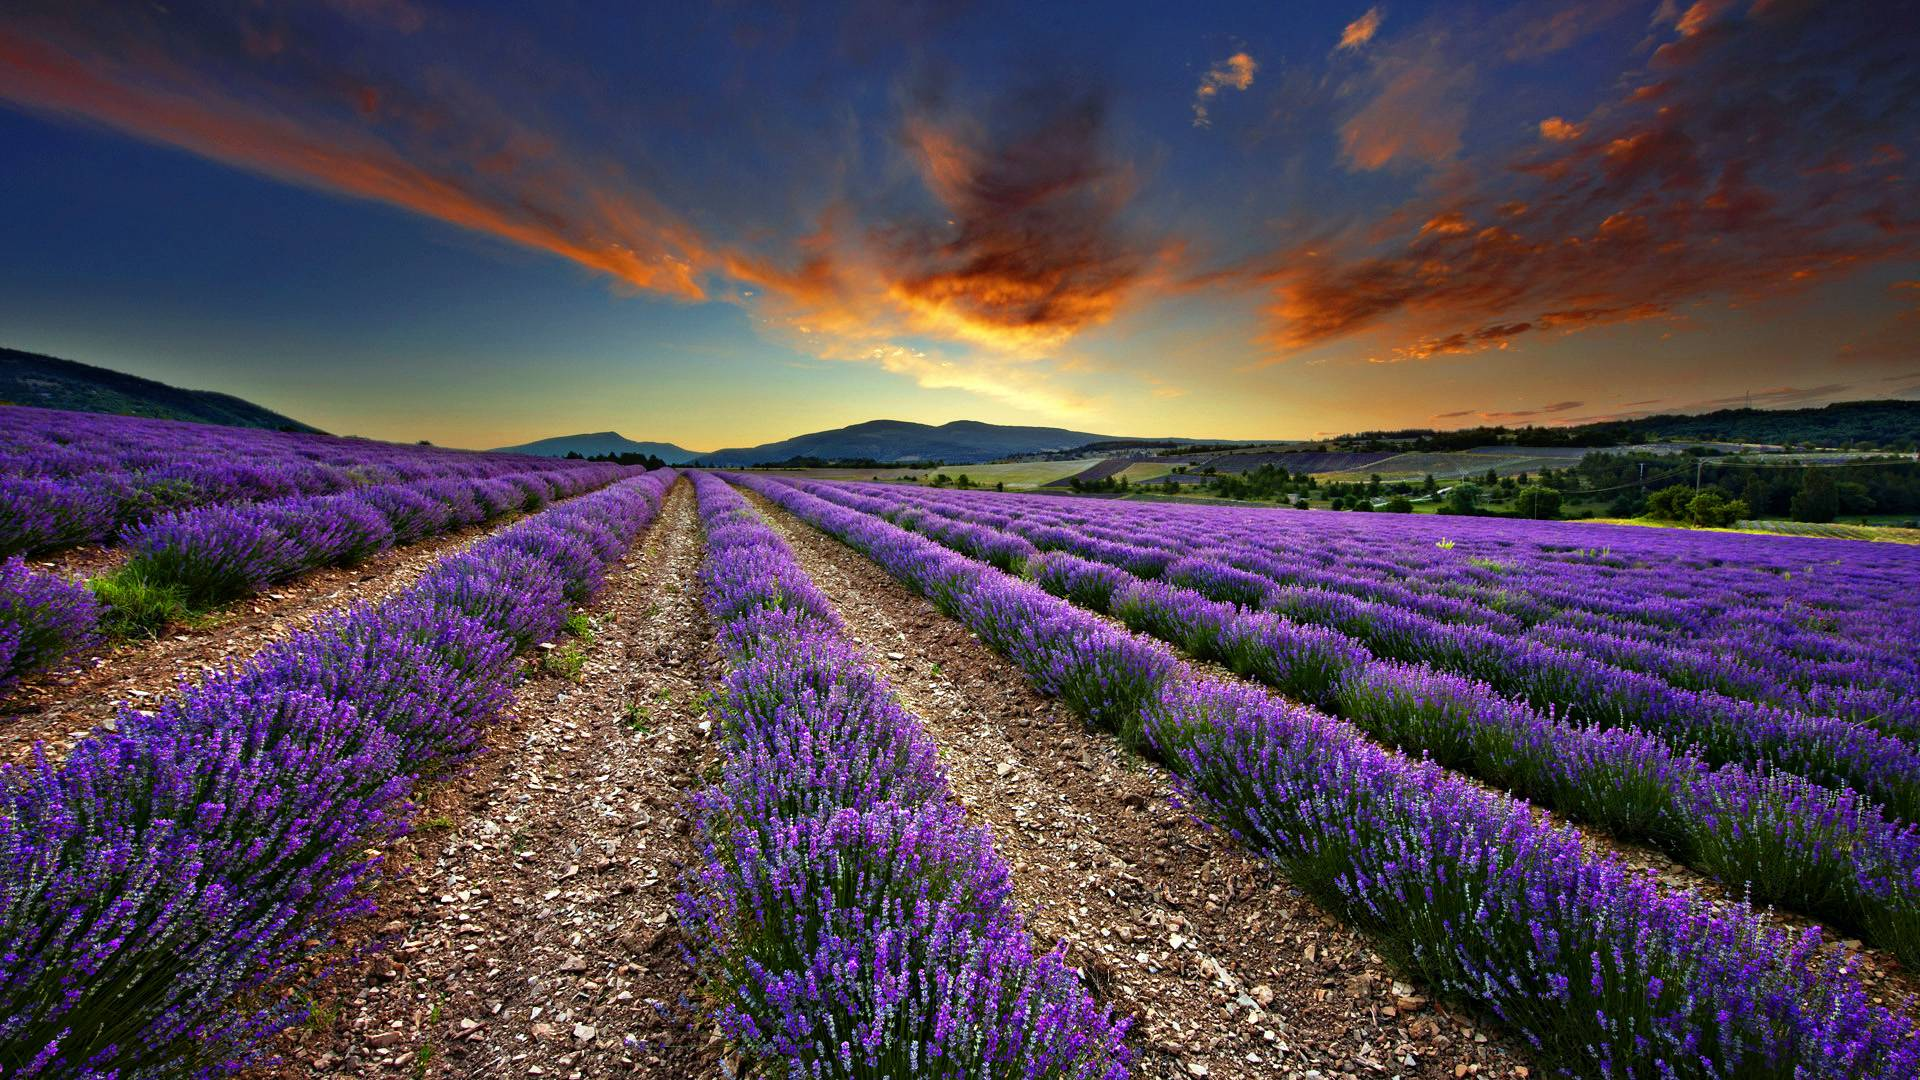 Lavender Fields Wallpaper